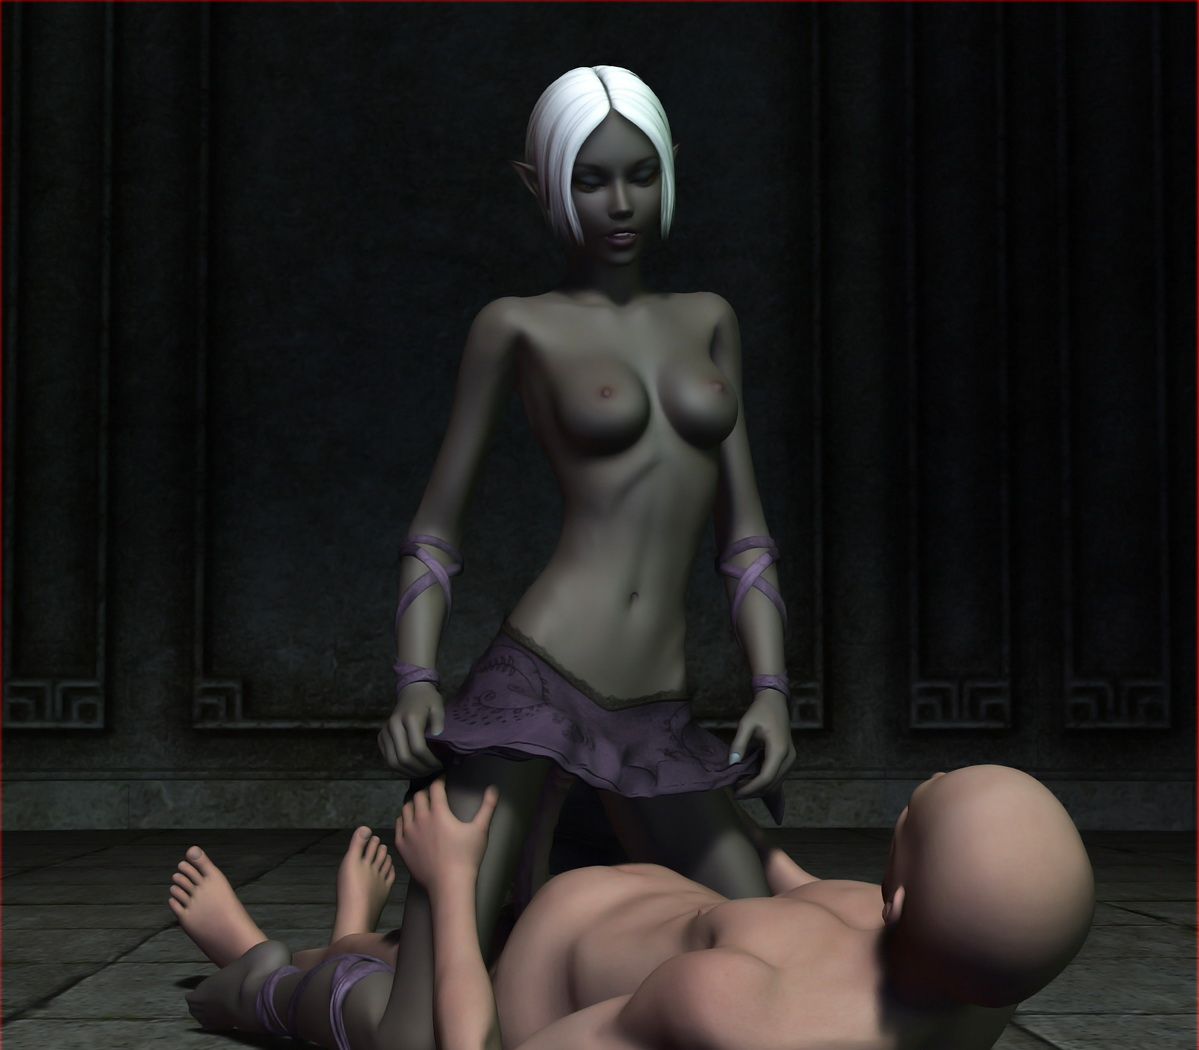 Demonic sexy girls nacked naked gallery